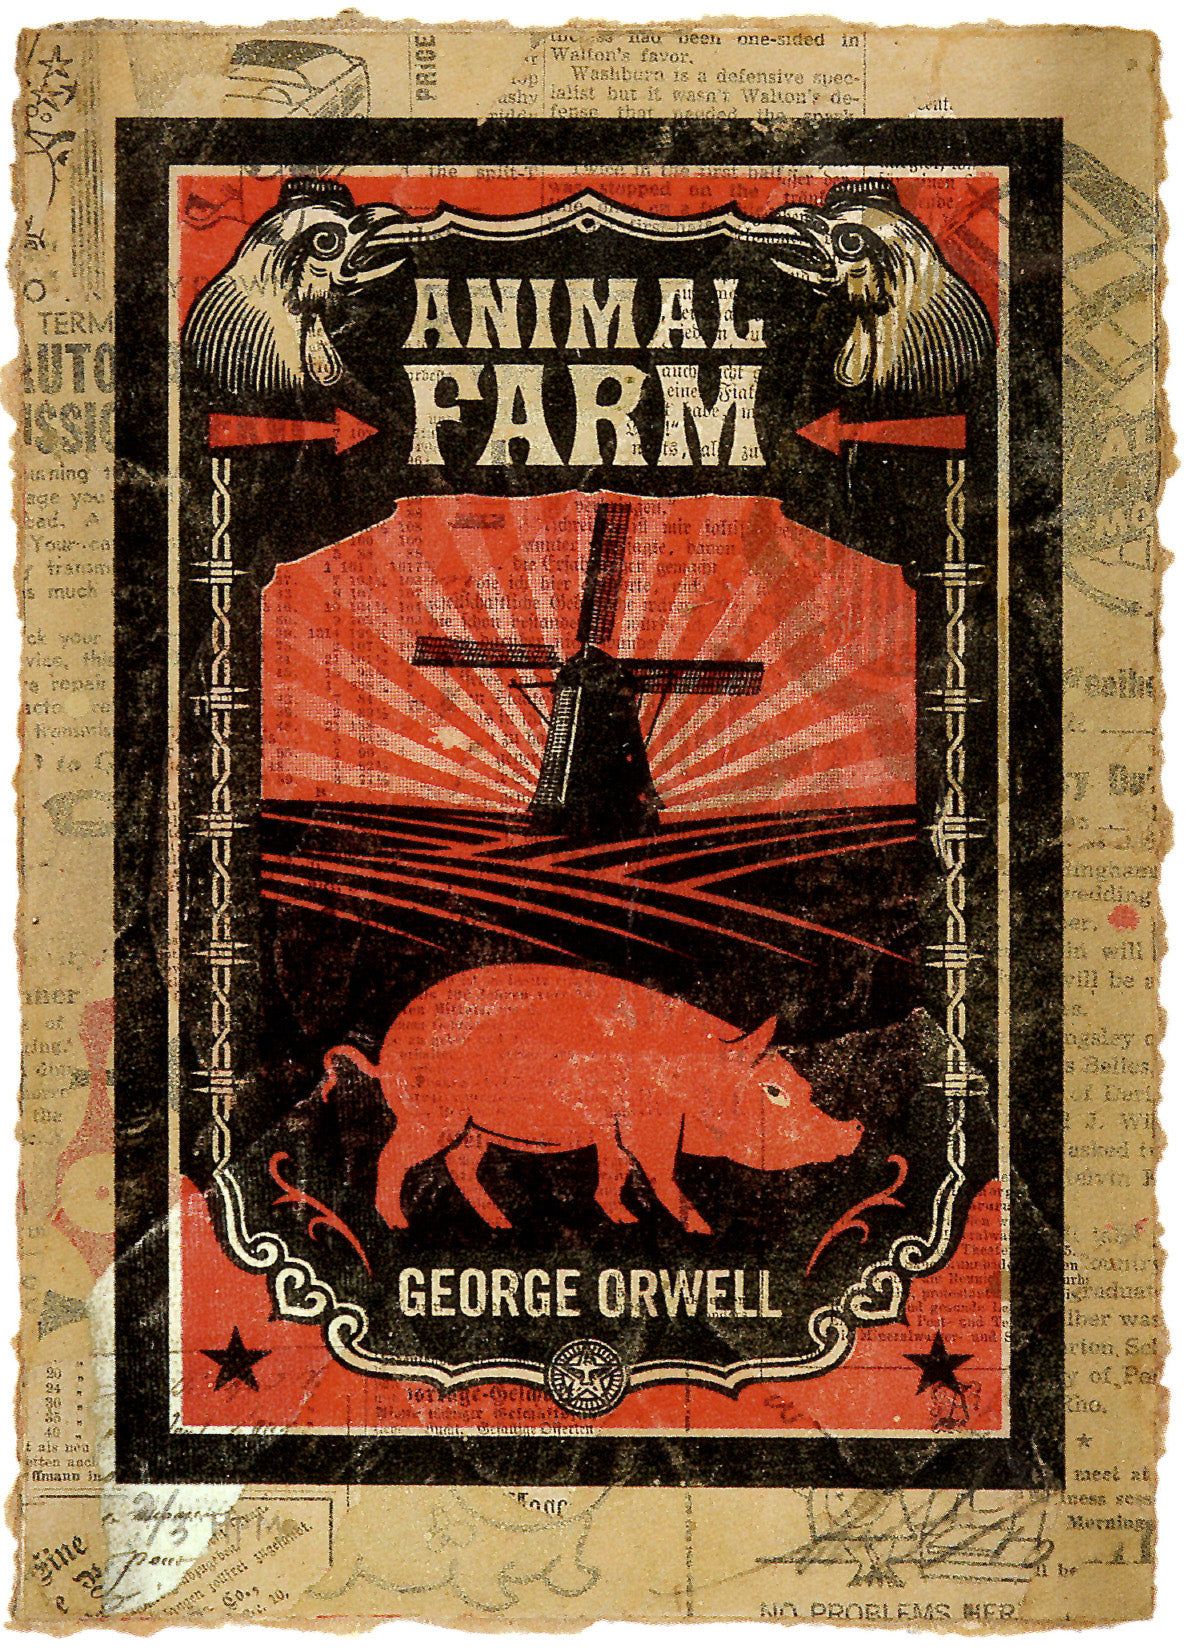 George Orwell's Animal Farm by Frank Shepard Fairey (Obey)